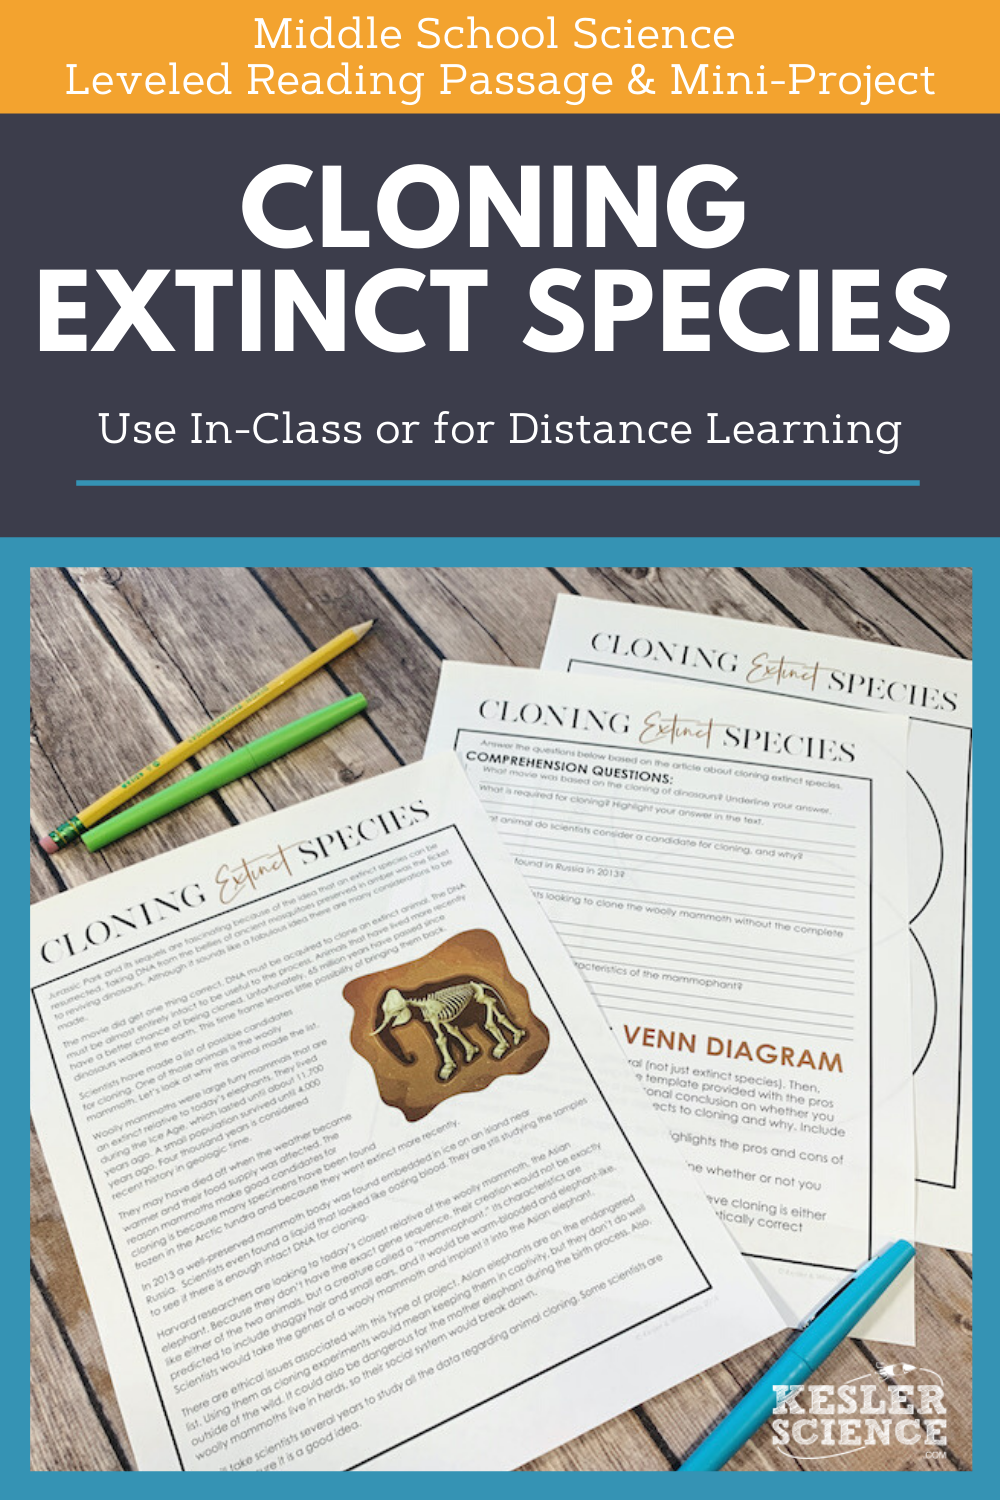 Science Reading Comprehension Cloning Extinct Species Science Reading Comprehension Science Reading Science Writing [ 1500 x 1000 Pixel ]